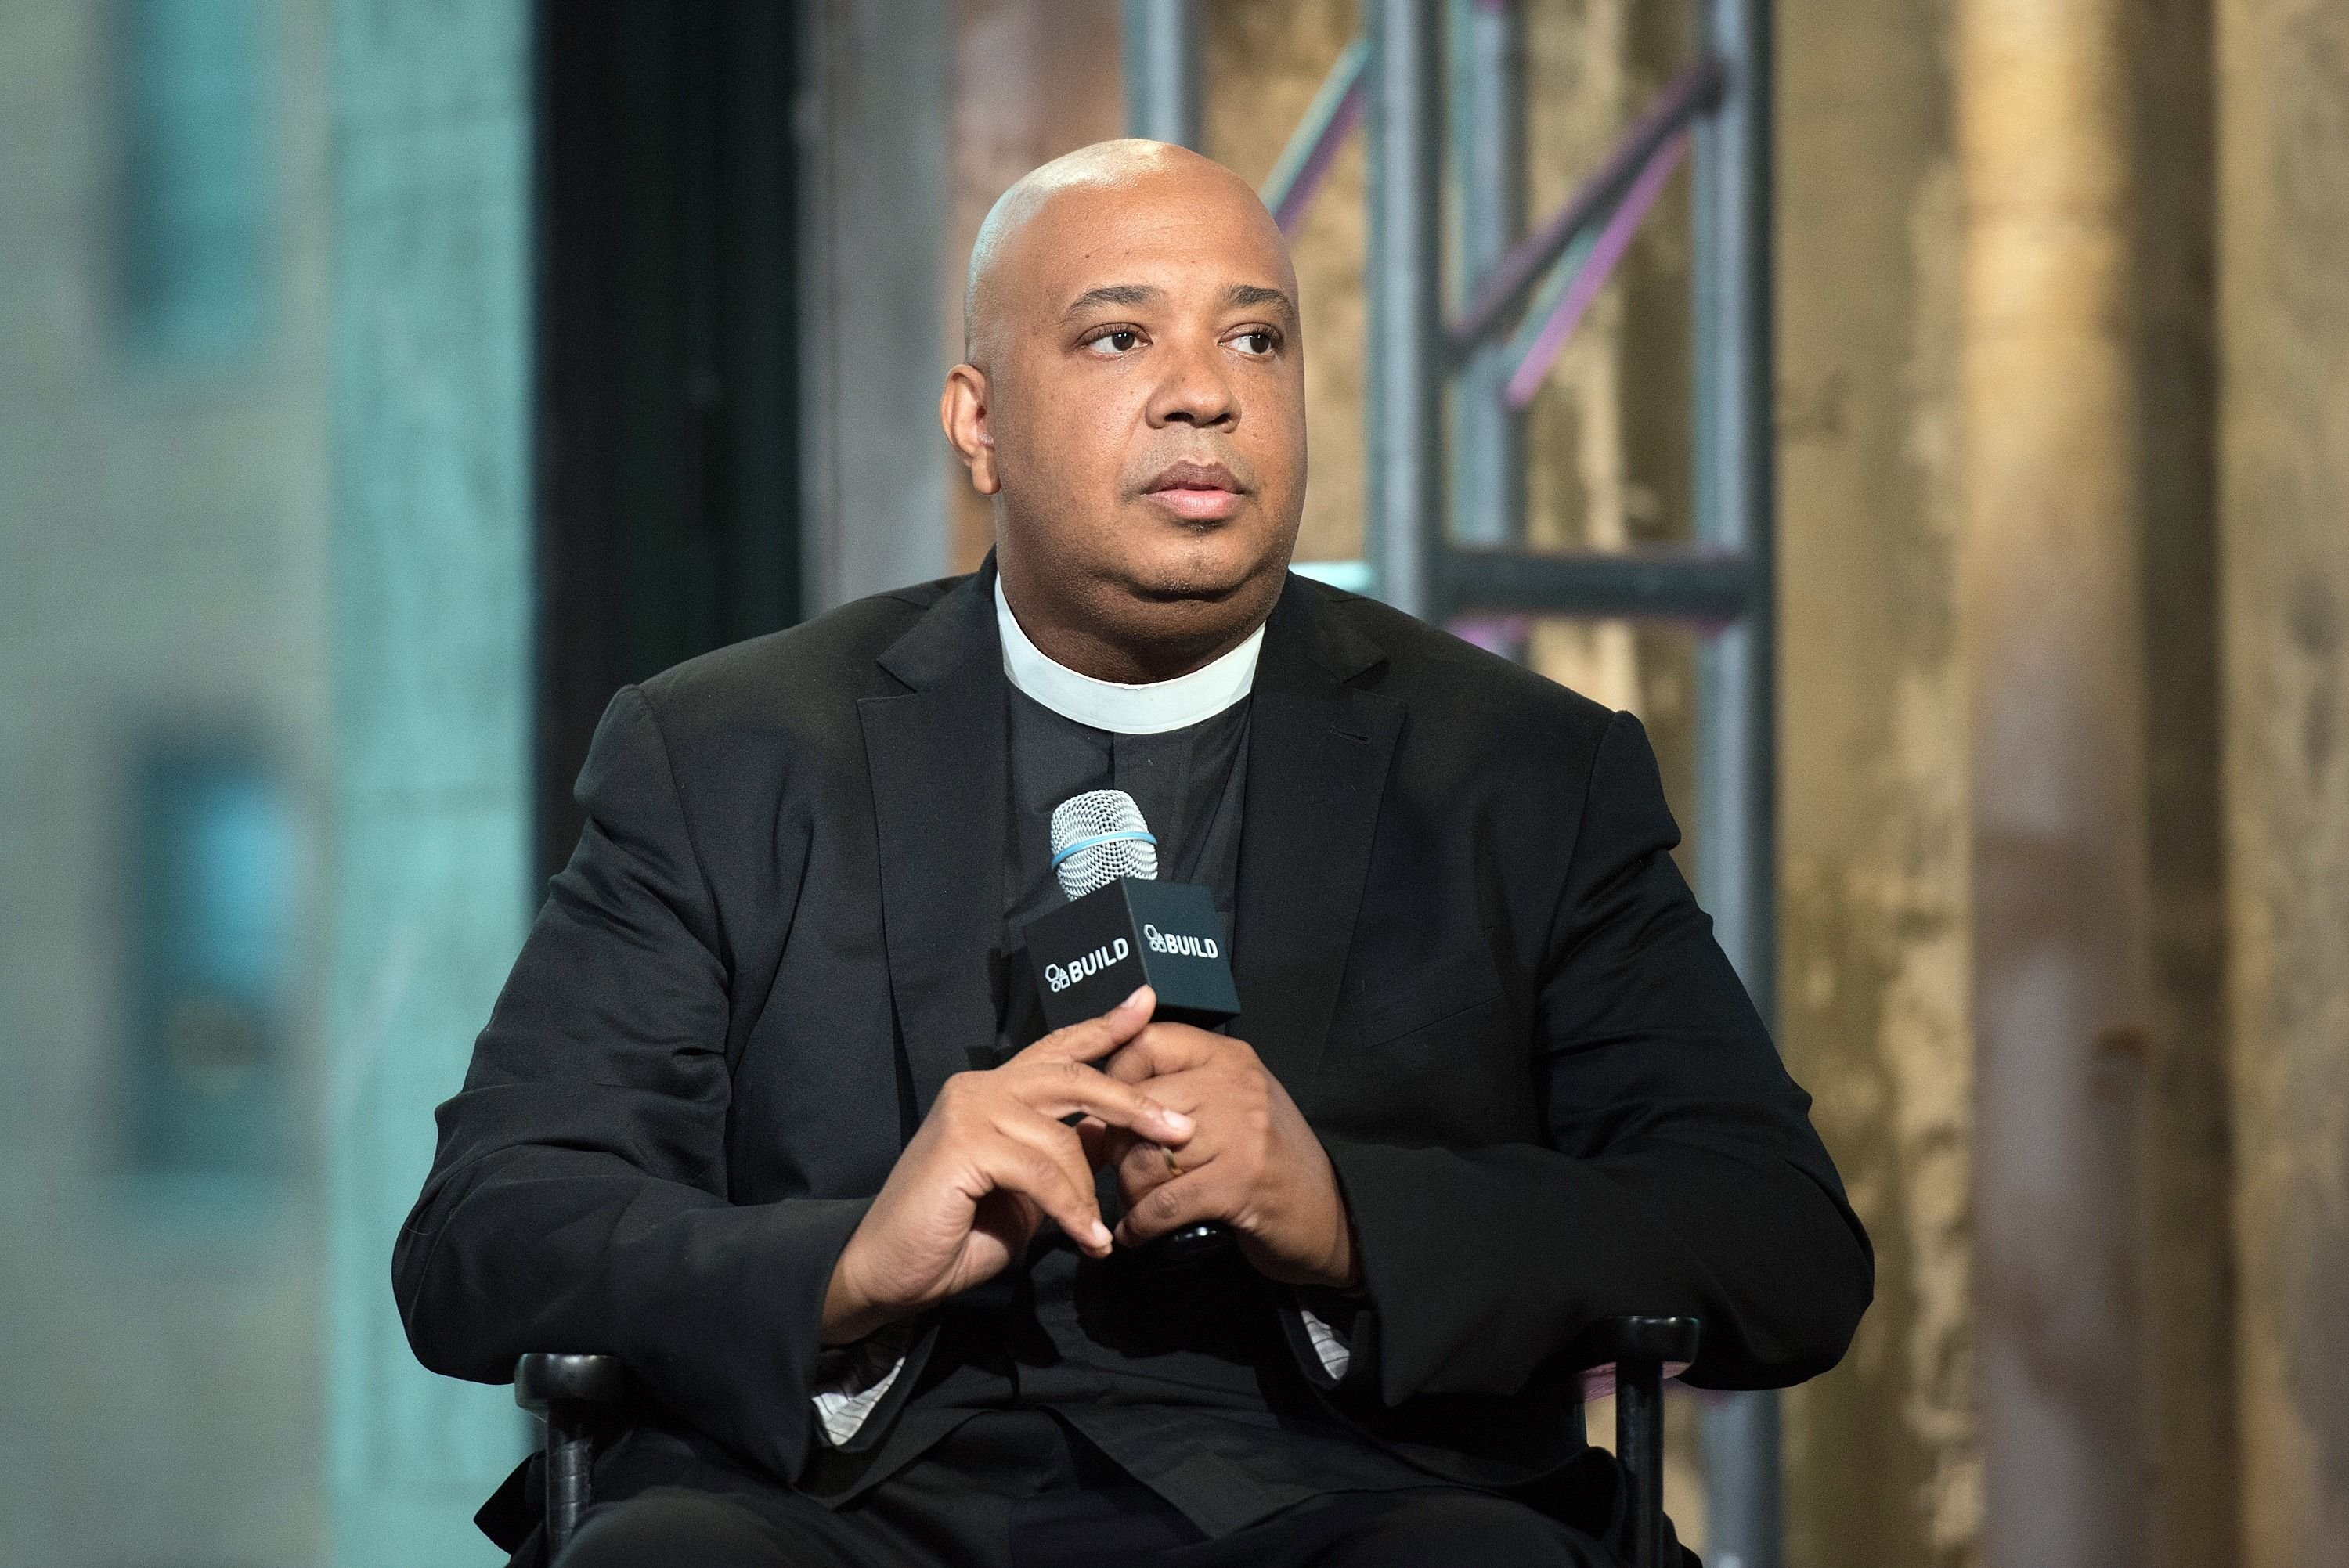 Joseph 'Rev Run' Simmons at AOL BUILD presents: Rev Run and Justine Simmons at AOL Studios In New York on October 13, 2015 in New York City   Photo: Getty Images